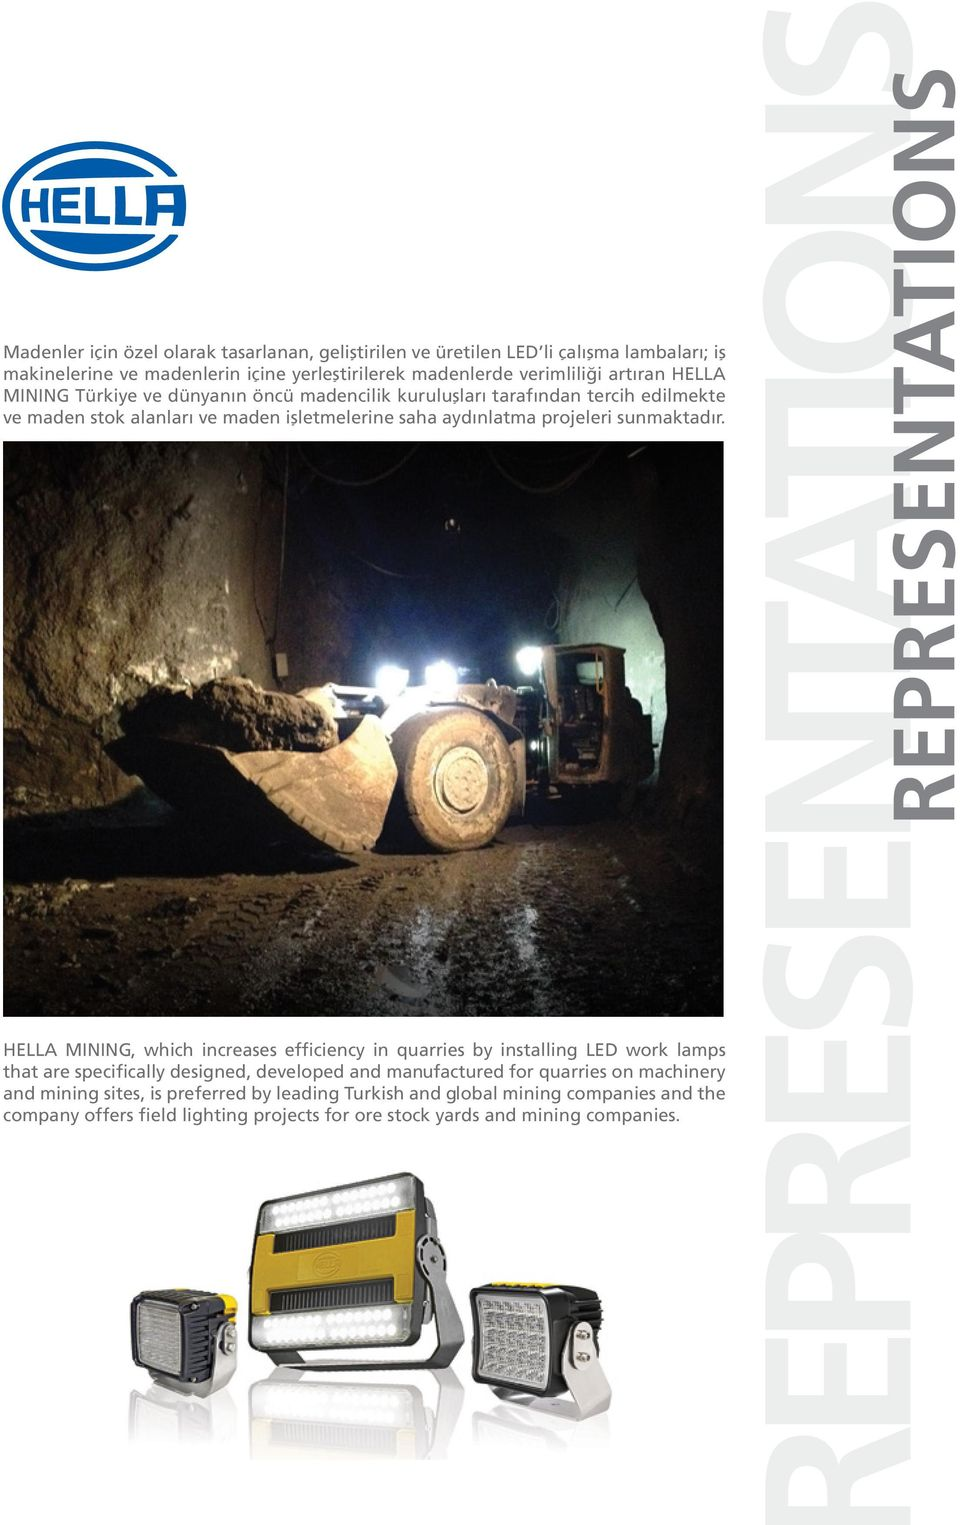 HELLA MINING, which increases efficiency in quarries by installing LED work lamps that are specifically designed, developed and manufactured for quarries on machinery and mining